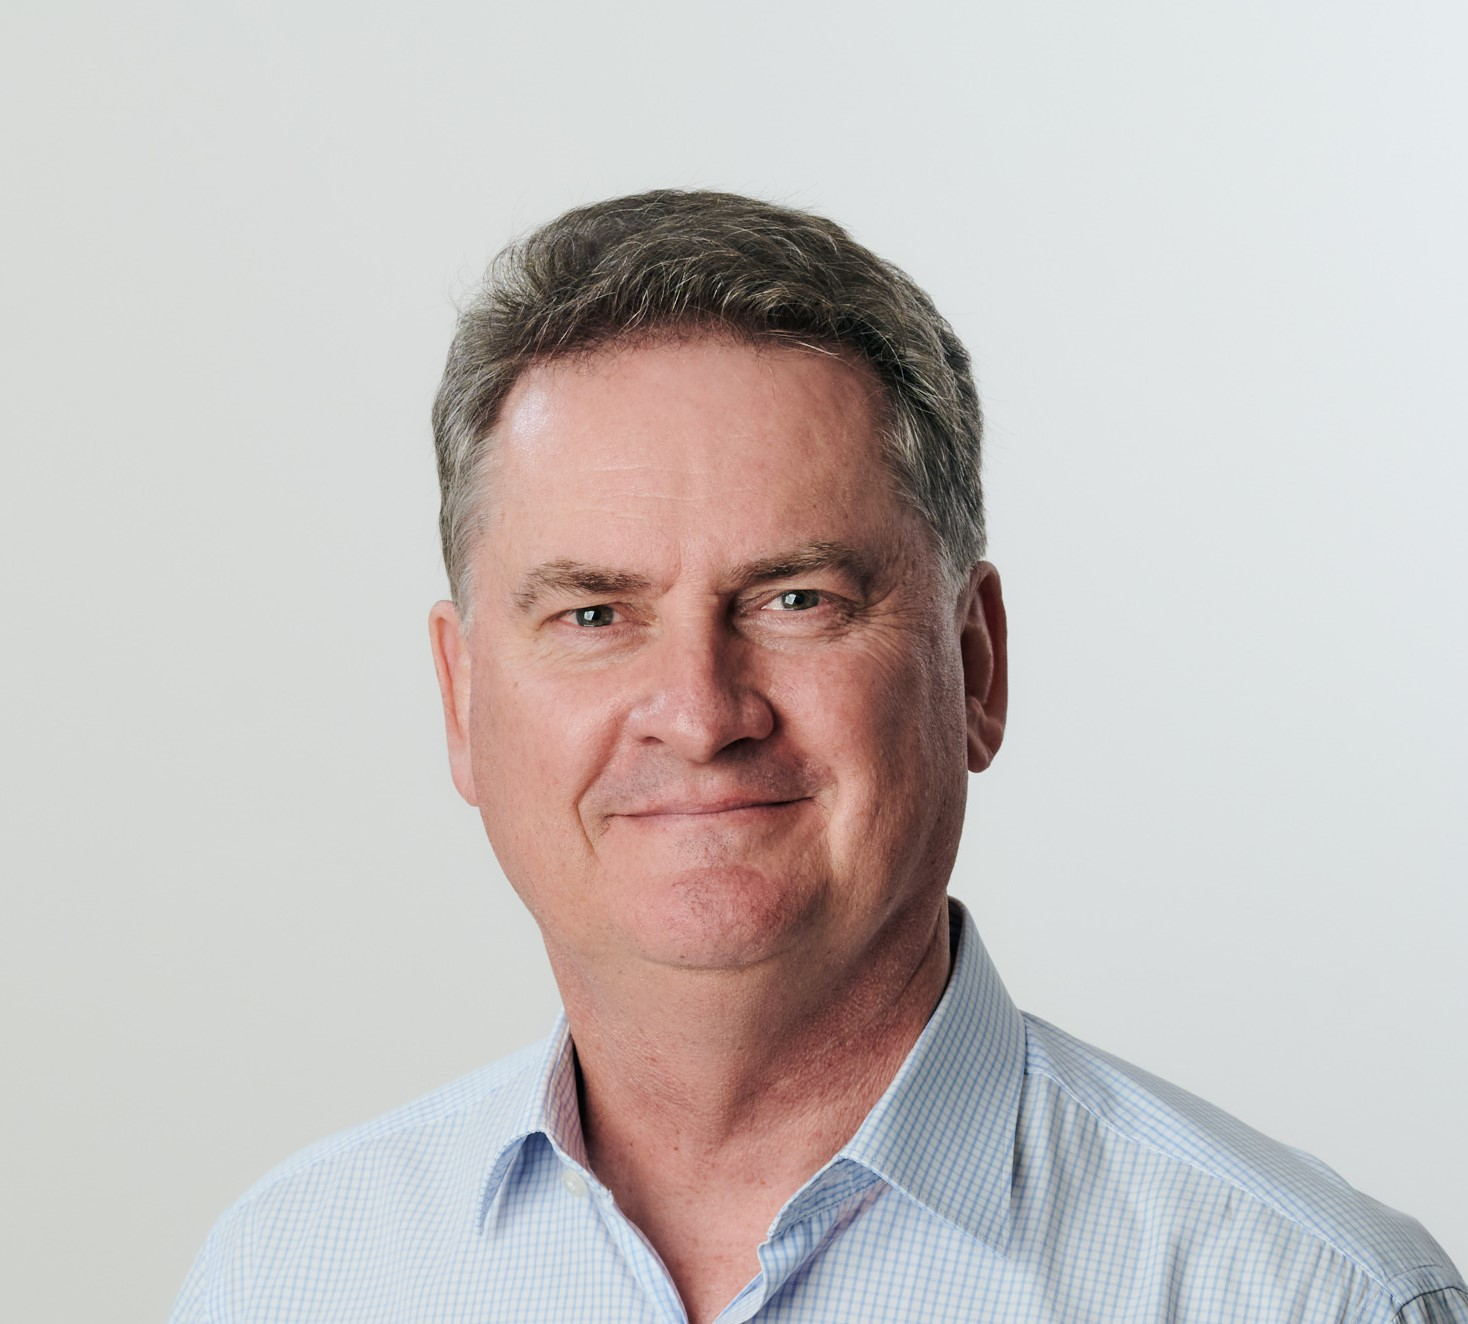 Photograph of Robert Hunt, CEO of Dietitians Australia